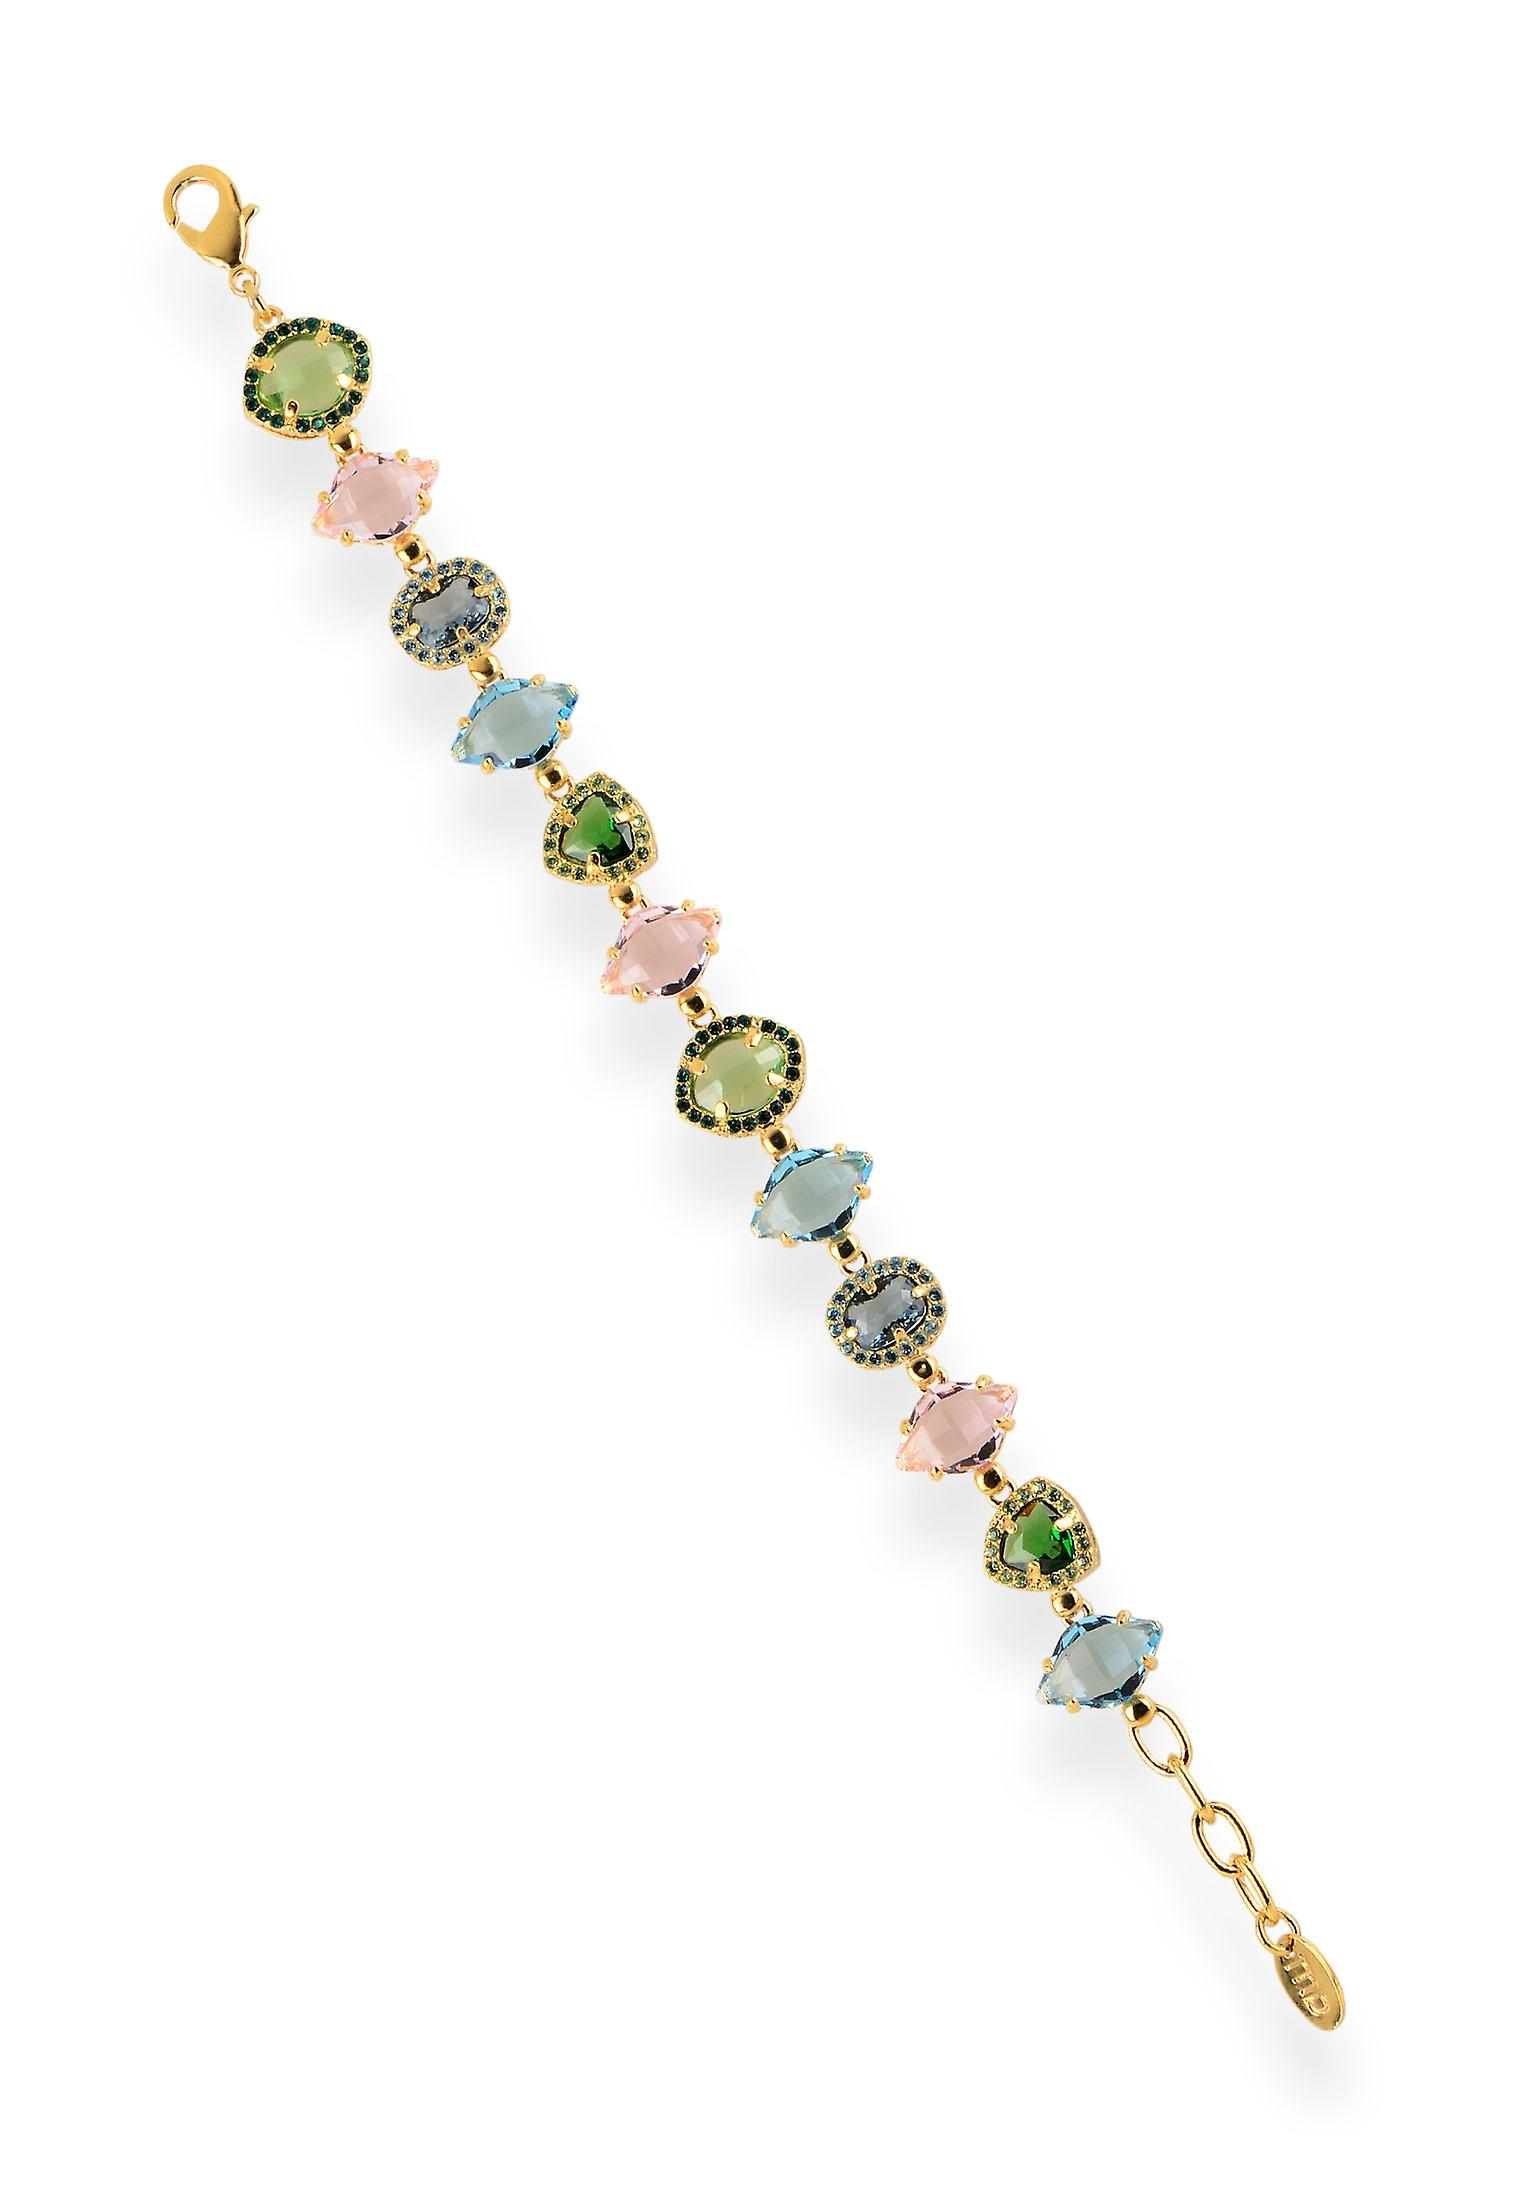 Multicolor bracelets with crystals from Swarovski 6260